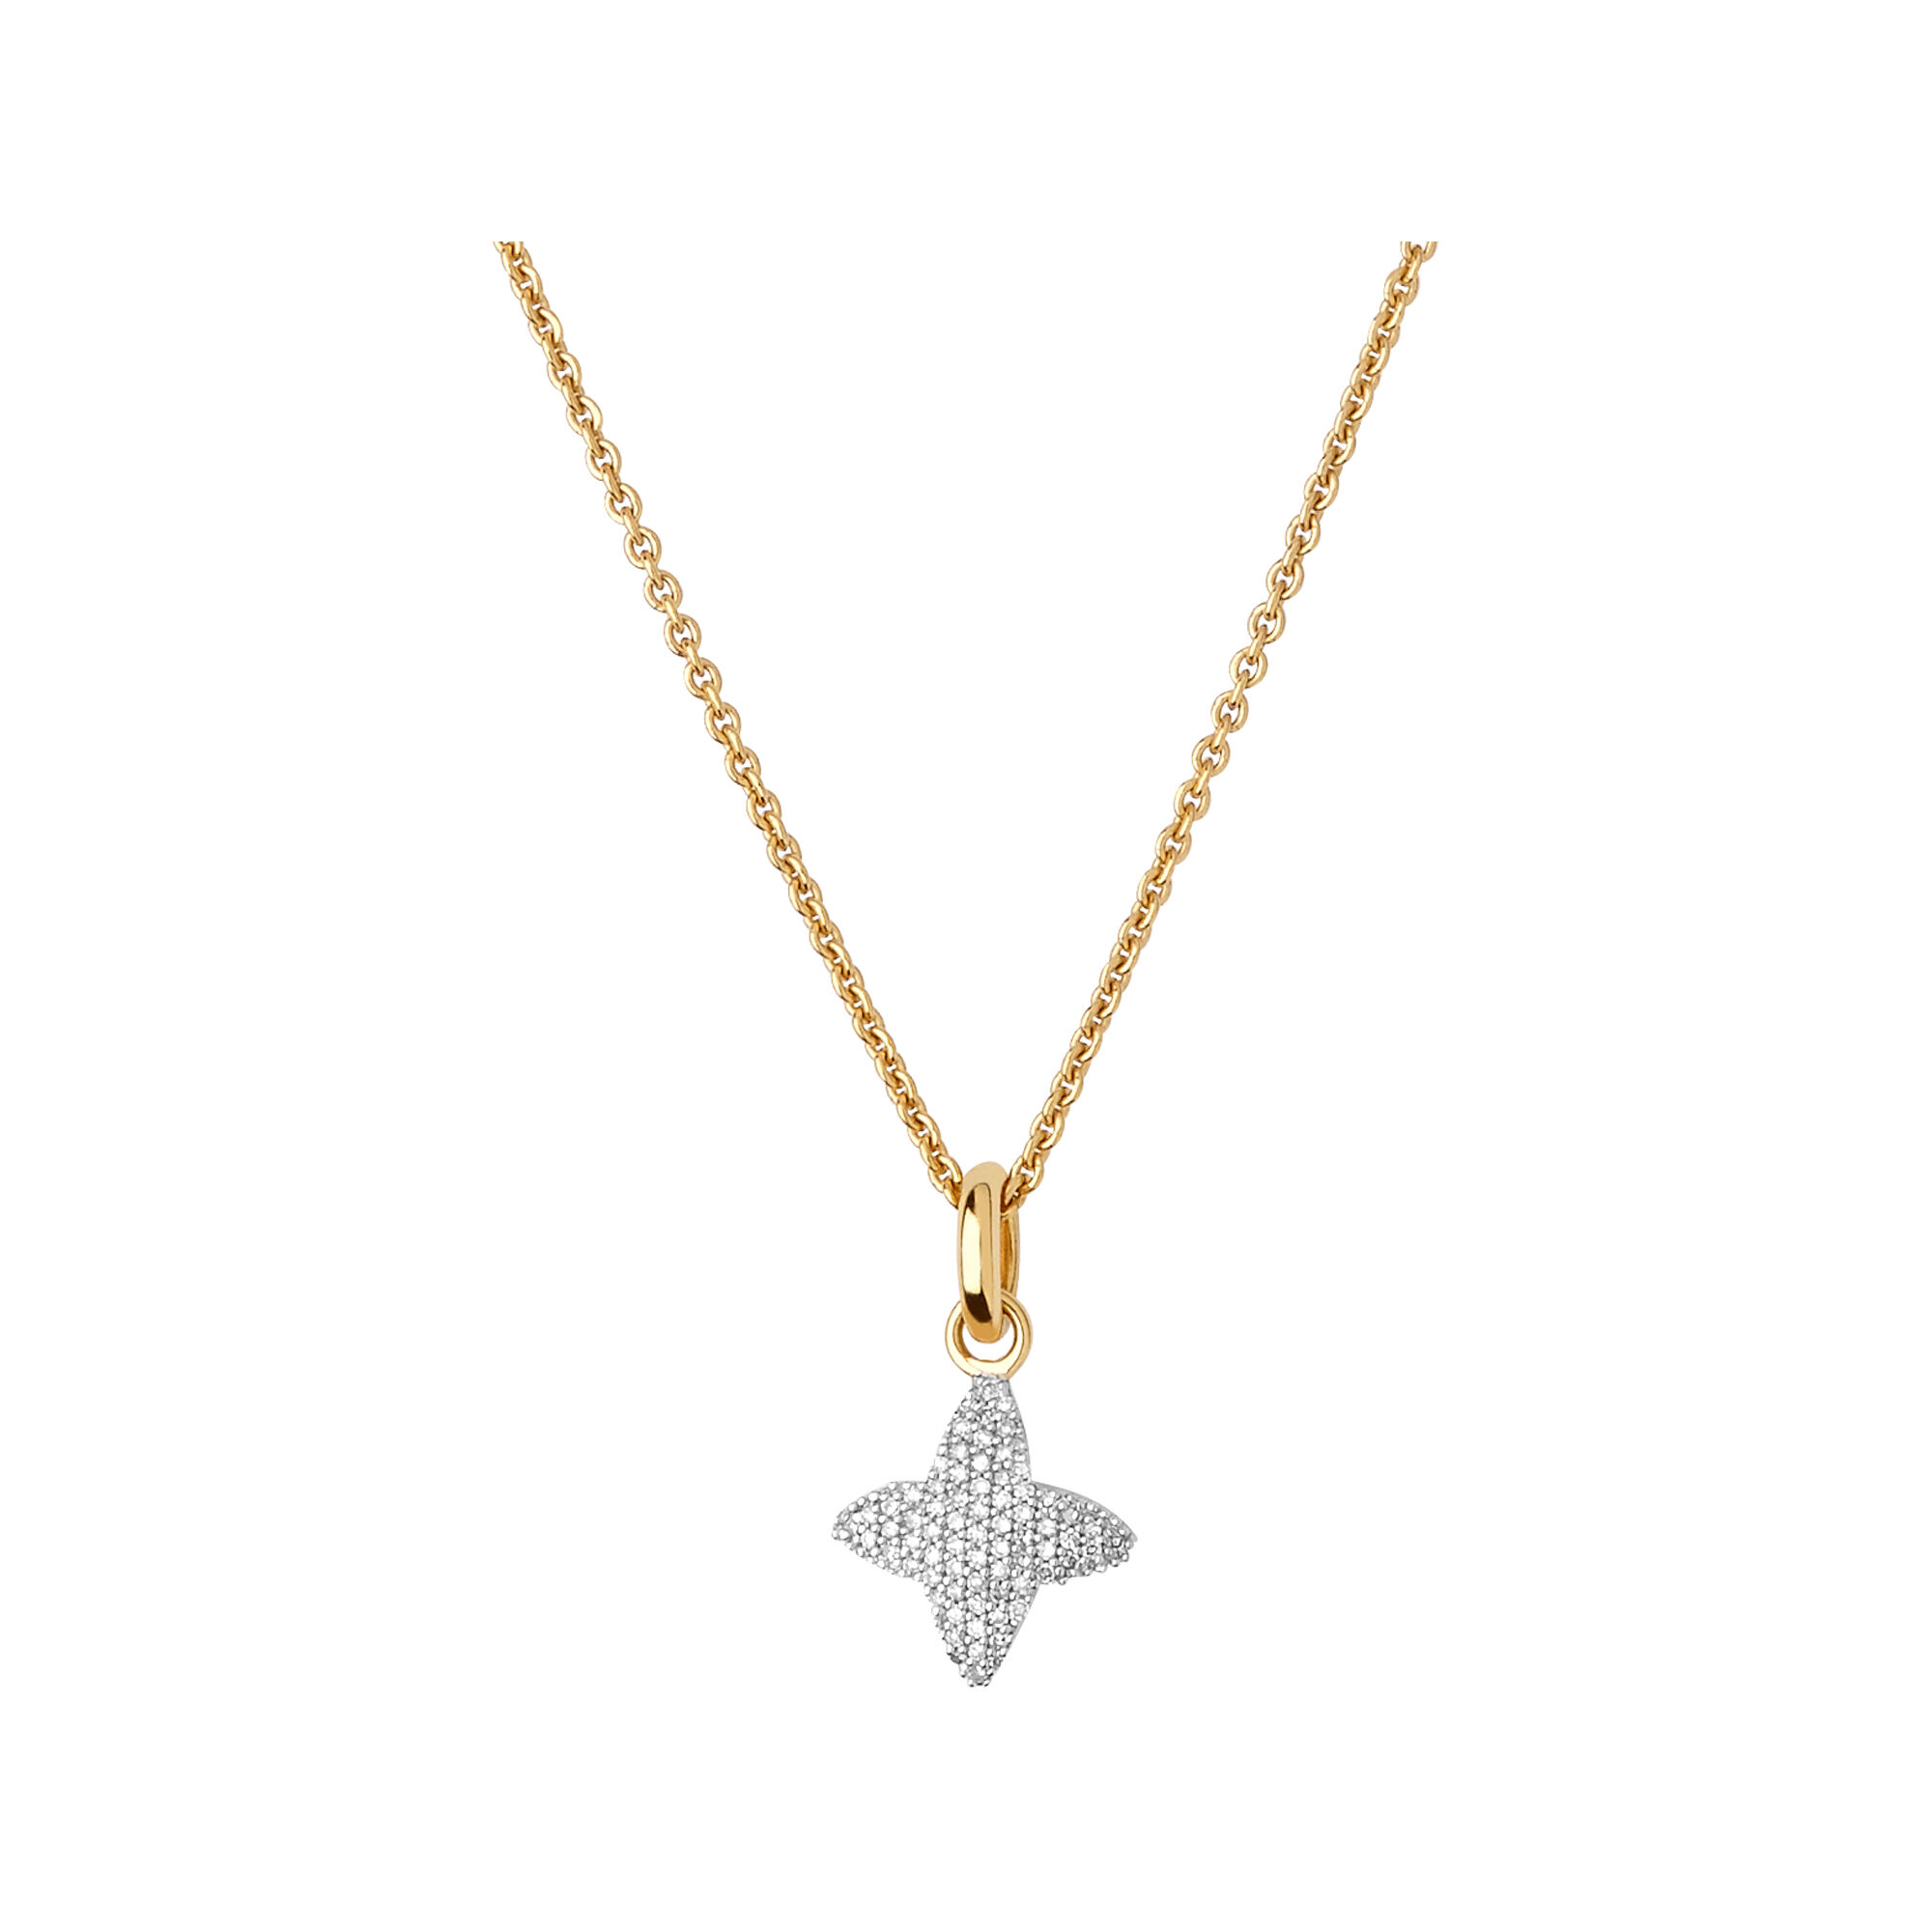 Splendour 18kt Yellow Gold Vermeil Diamond Four Point Star Necklace